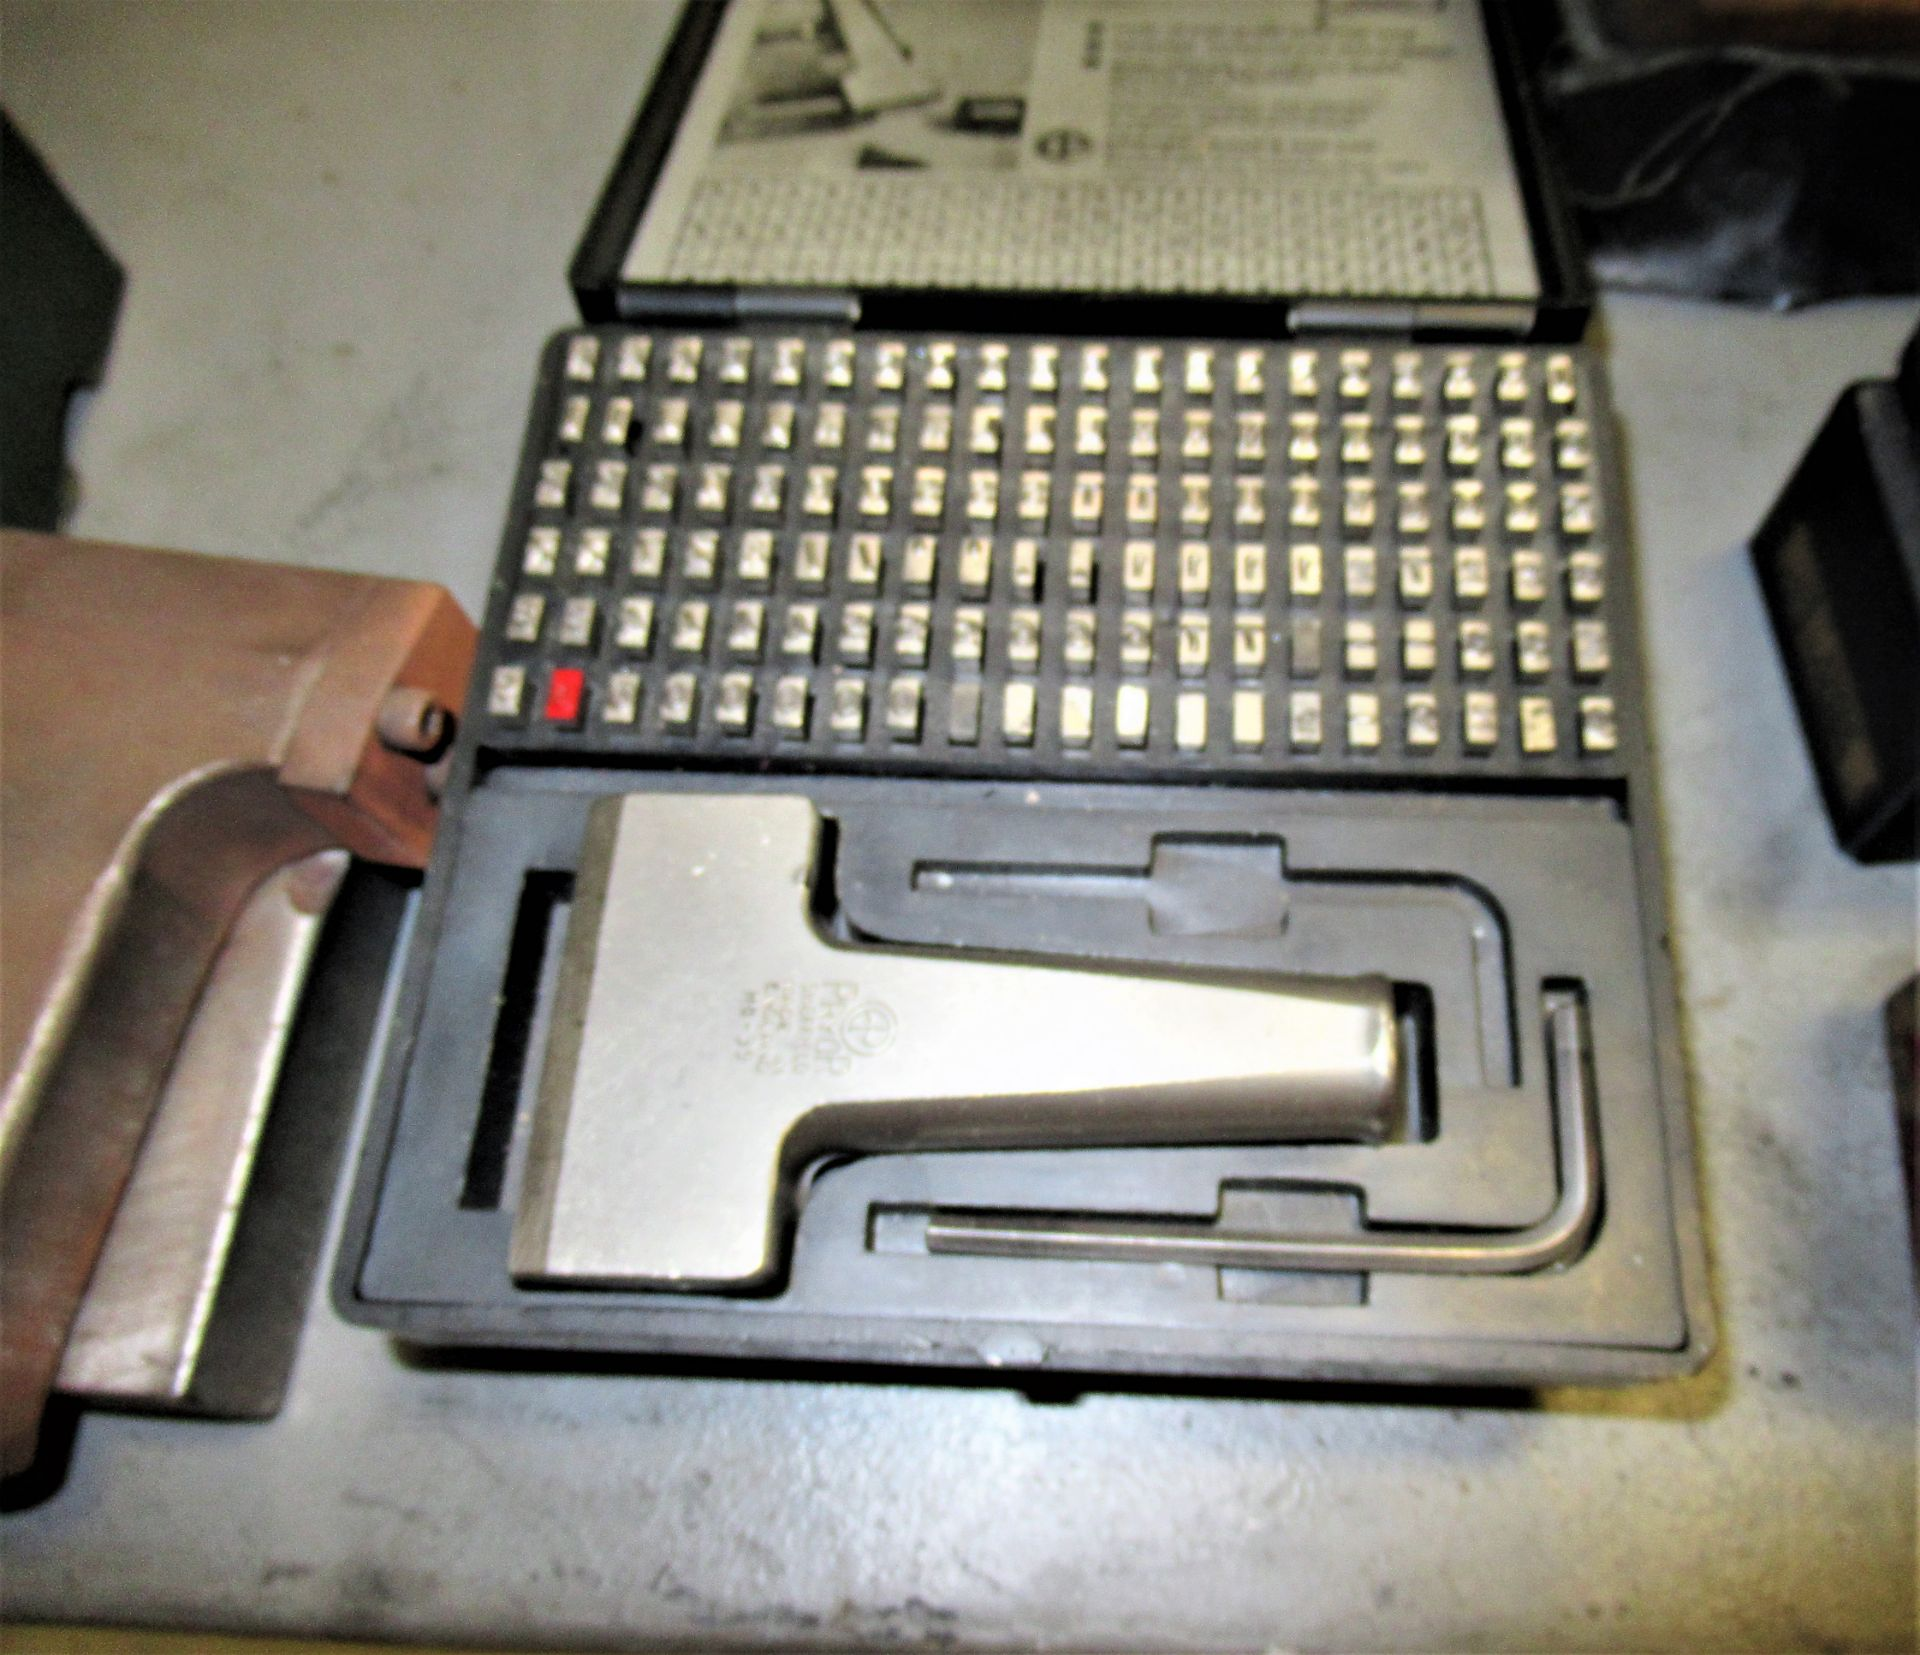 LOT OF LETTER & NUMBER PUNCHES - Image 2 of 2